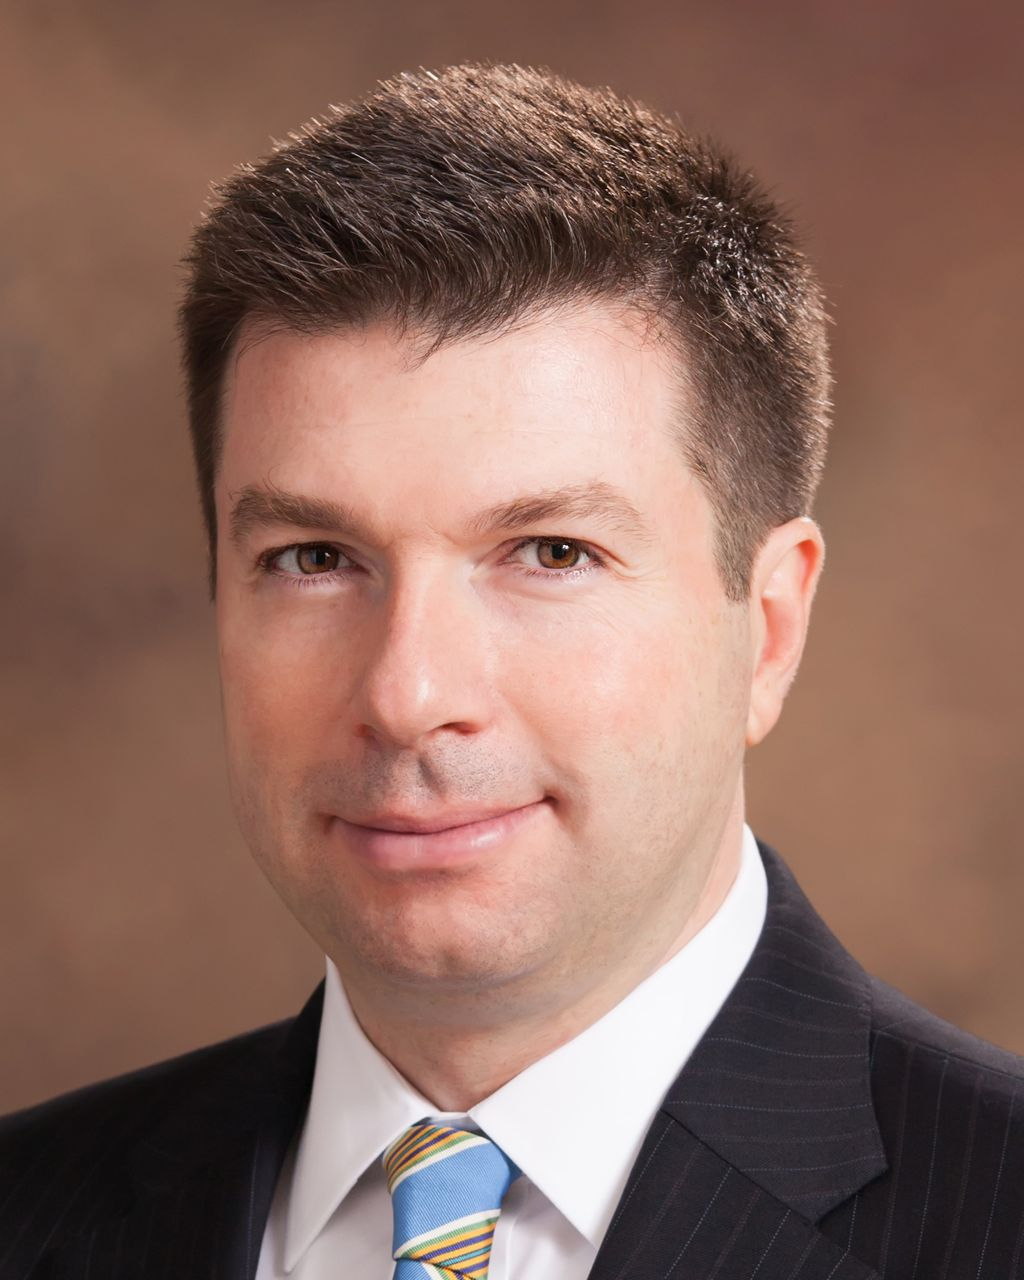 Patrick Cote, financial advisor Marlborough MA